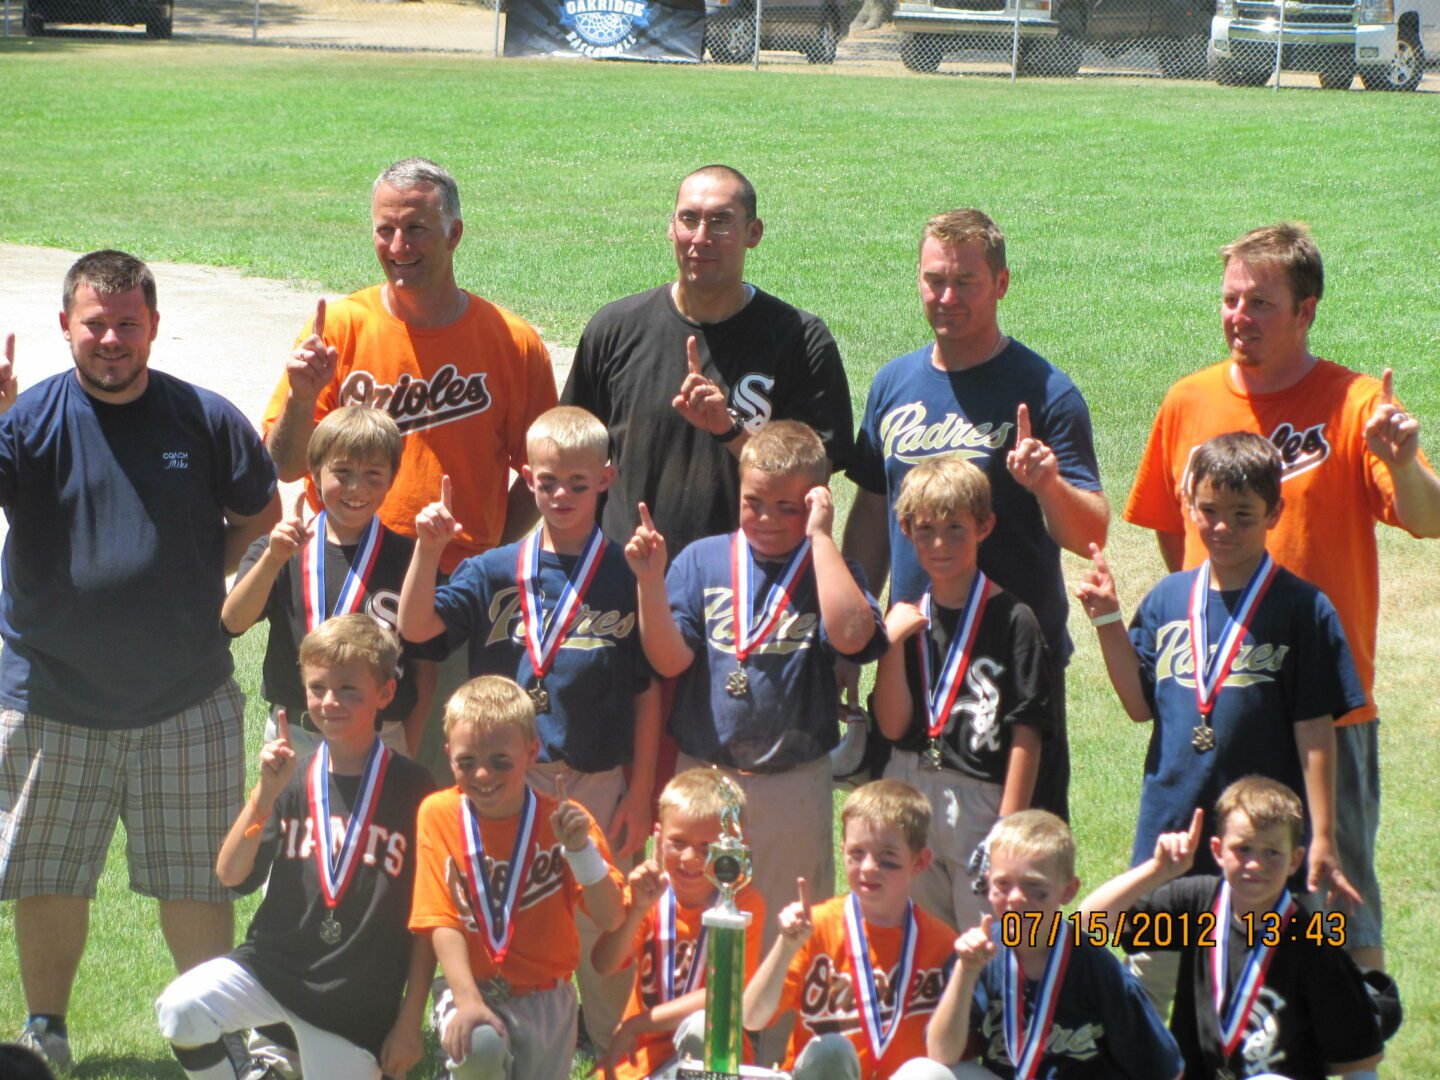 Roosevelt Park crowned champions of first-ever 8U all-star tournament